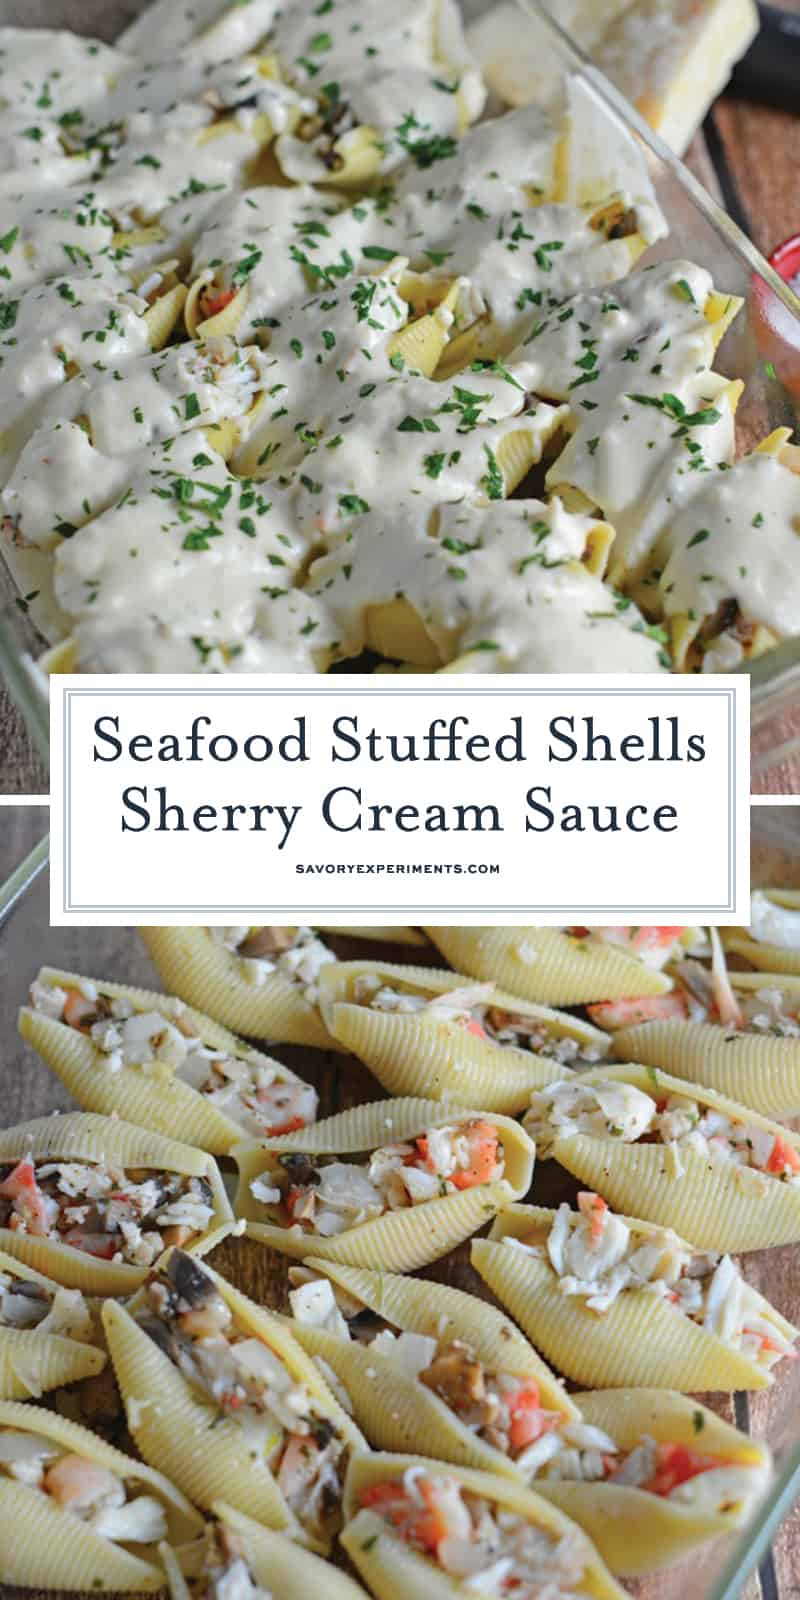 Seafood Stuffed Shells in a Sherry Cream Sauce is a dinner fit for a special occasion with buttery crab, tender shrimp and a mild cream sauce. #seafoodstuffedshells #stuffedshellsrecipe www.savoryexperiments.com